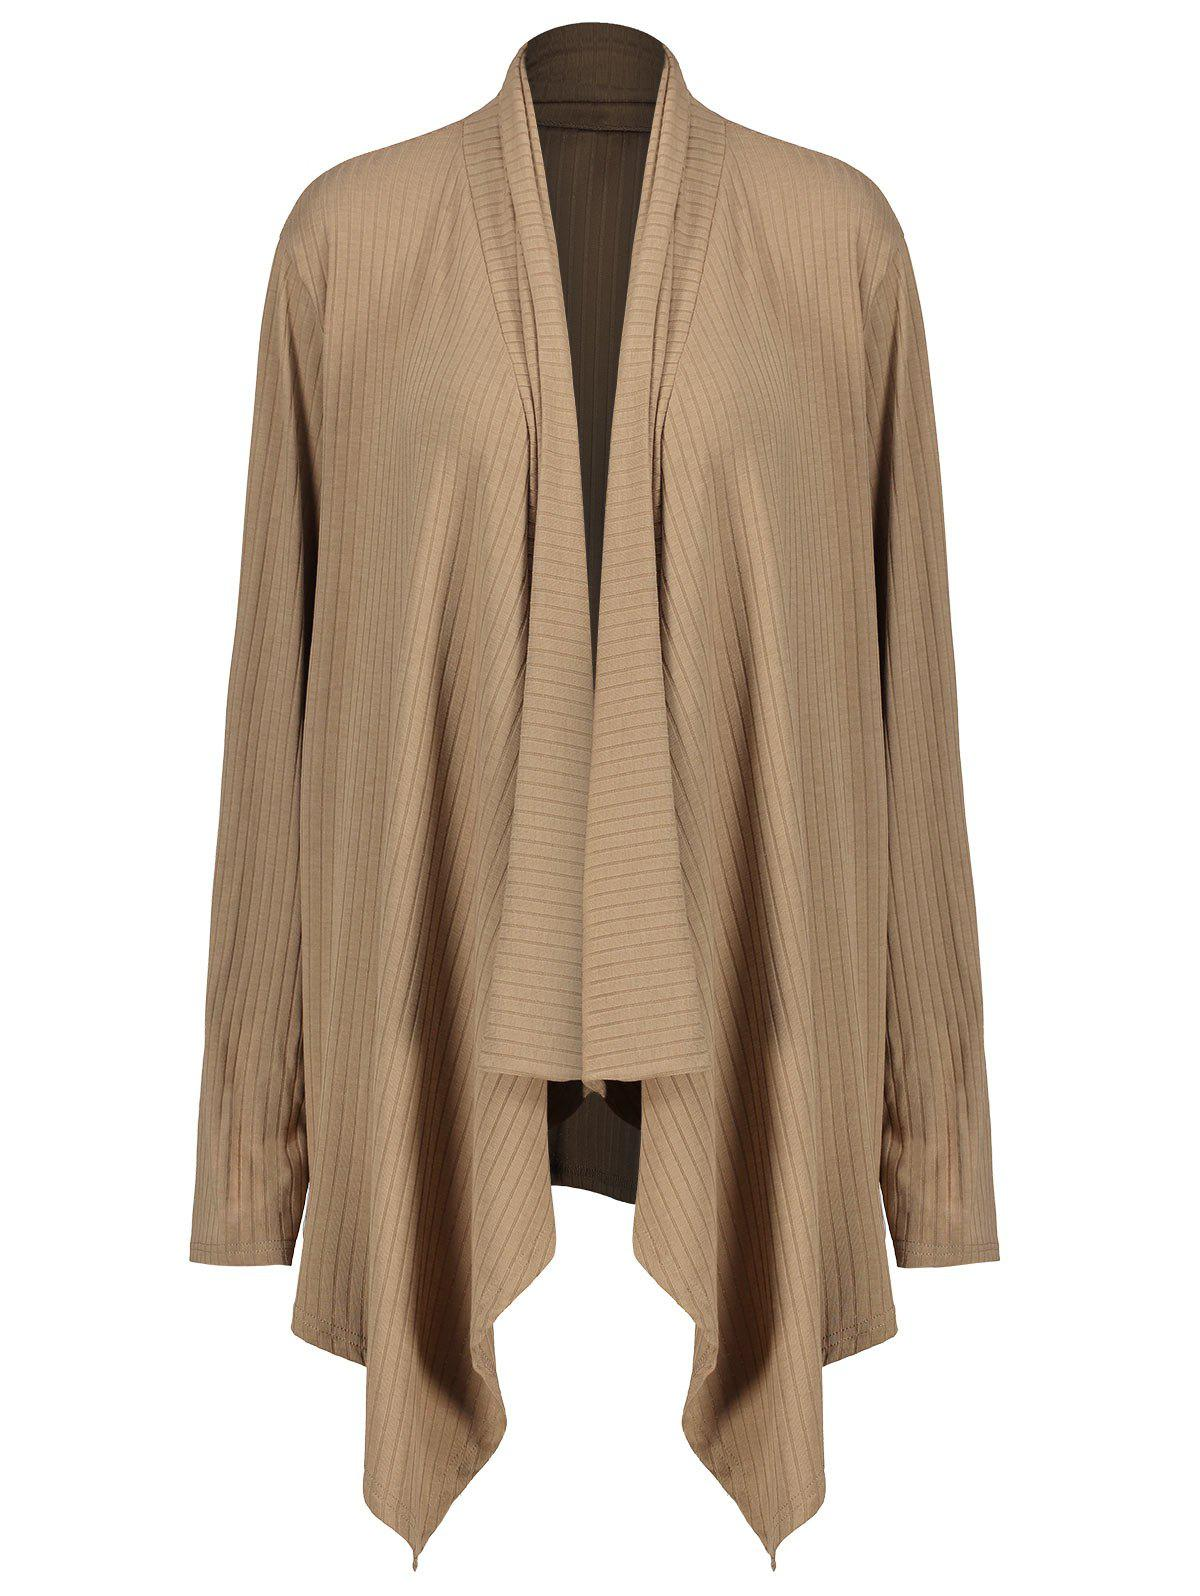 Plus Size Jersey Asymmetric Draped CoatWOMEN<br><br>Size: 4XL; Color: KHAKI; Clothes Type: Trench; Material: Polyester; Type: Asymmetric Length; Shirt Length: Regular; Sleeve Length: Full; Collar: Shawl Collar; Pattern Type: Solid; Style: Casual; Season: Fall,Winter; Weight: 0.4300kg; Package Contents: 1 x Coat;